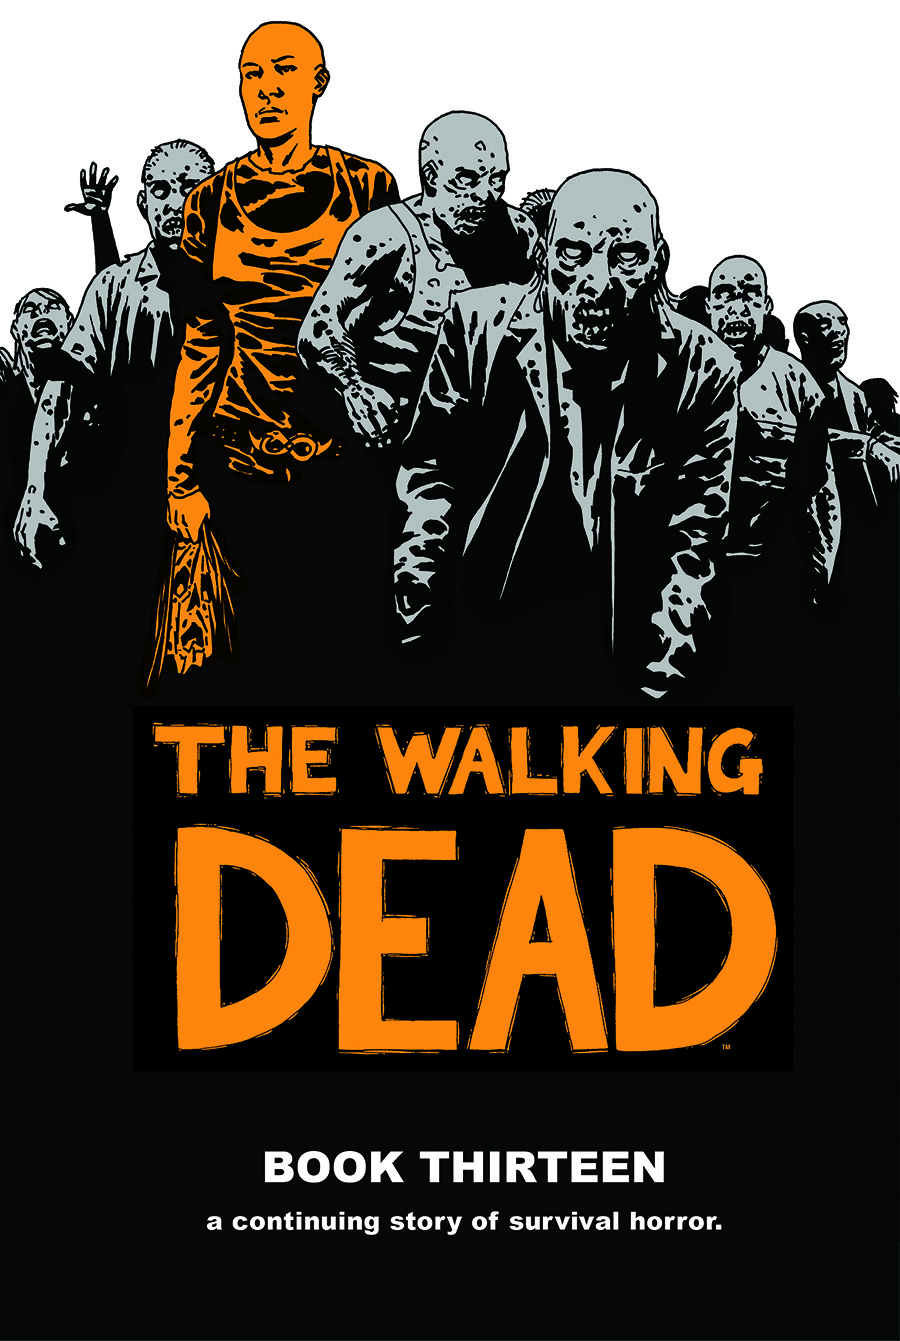 The Walking Dead: Book Thirteen